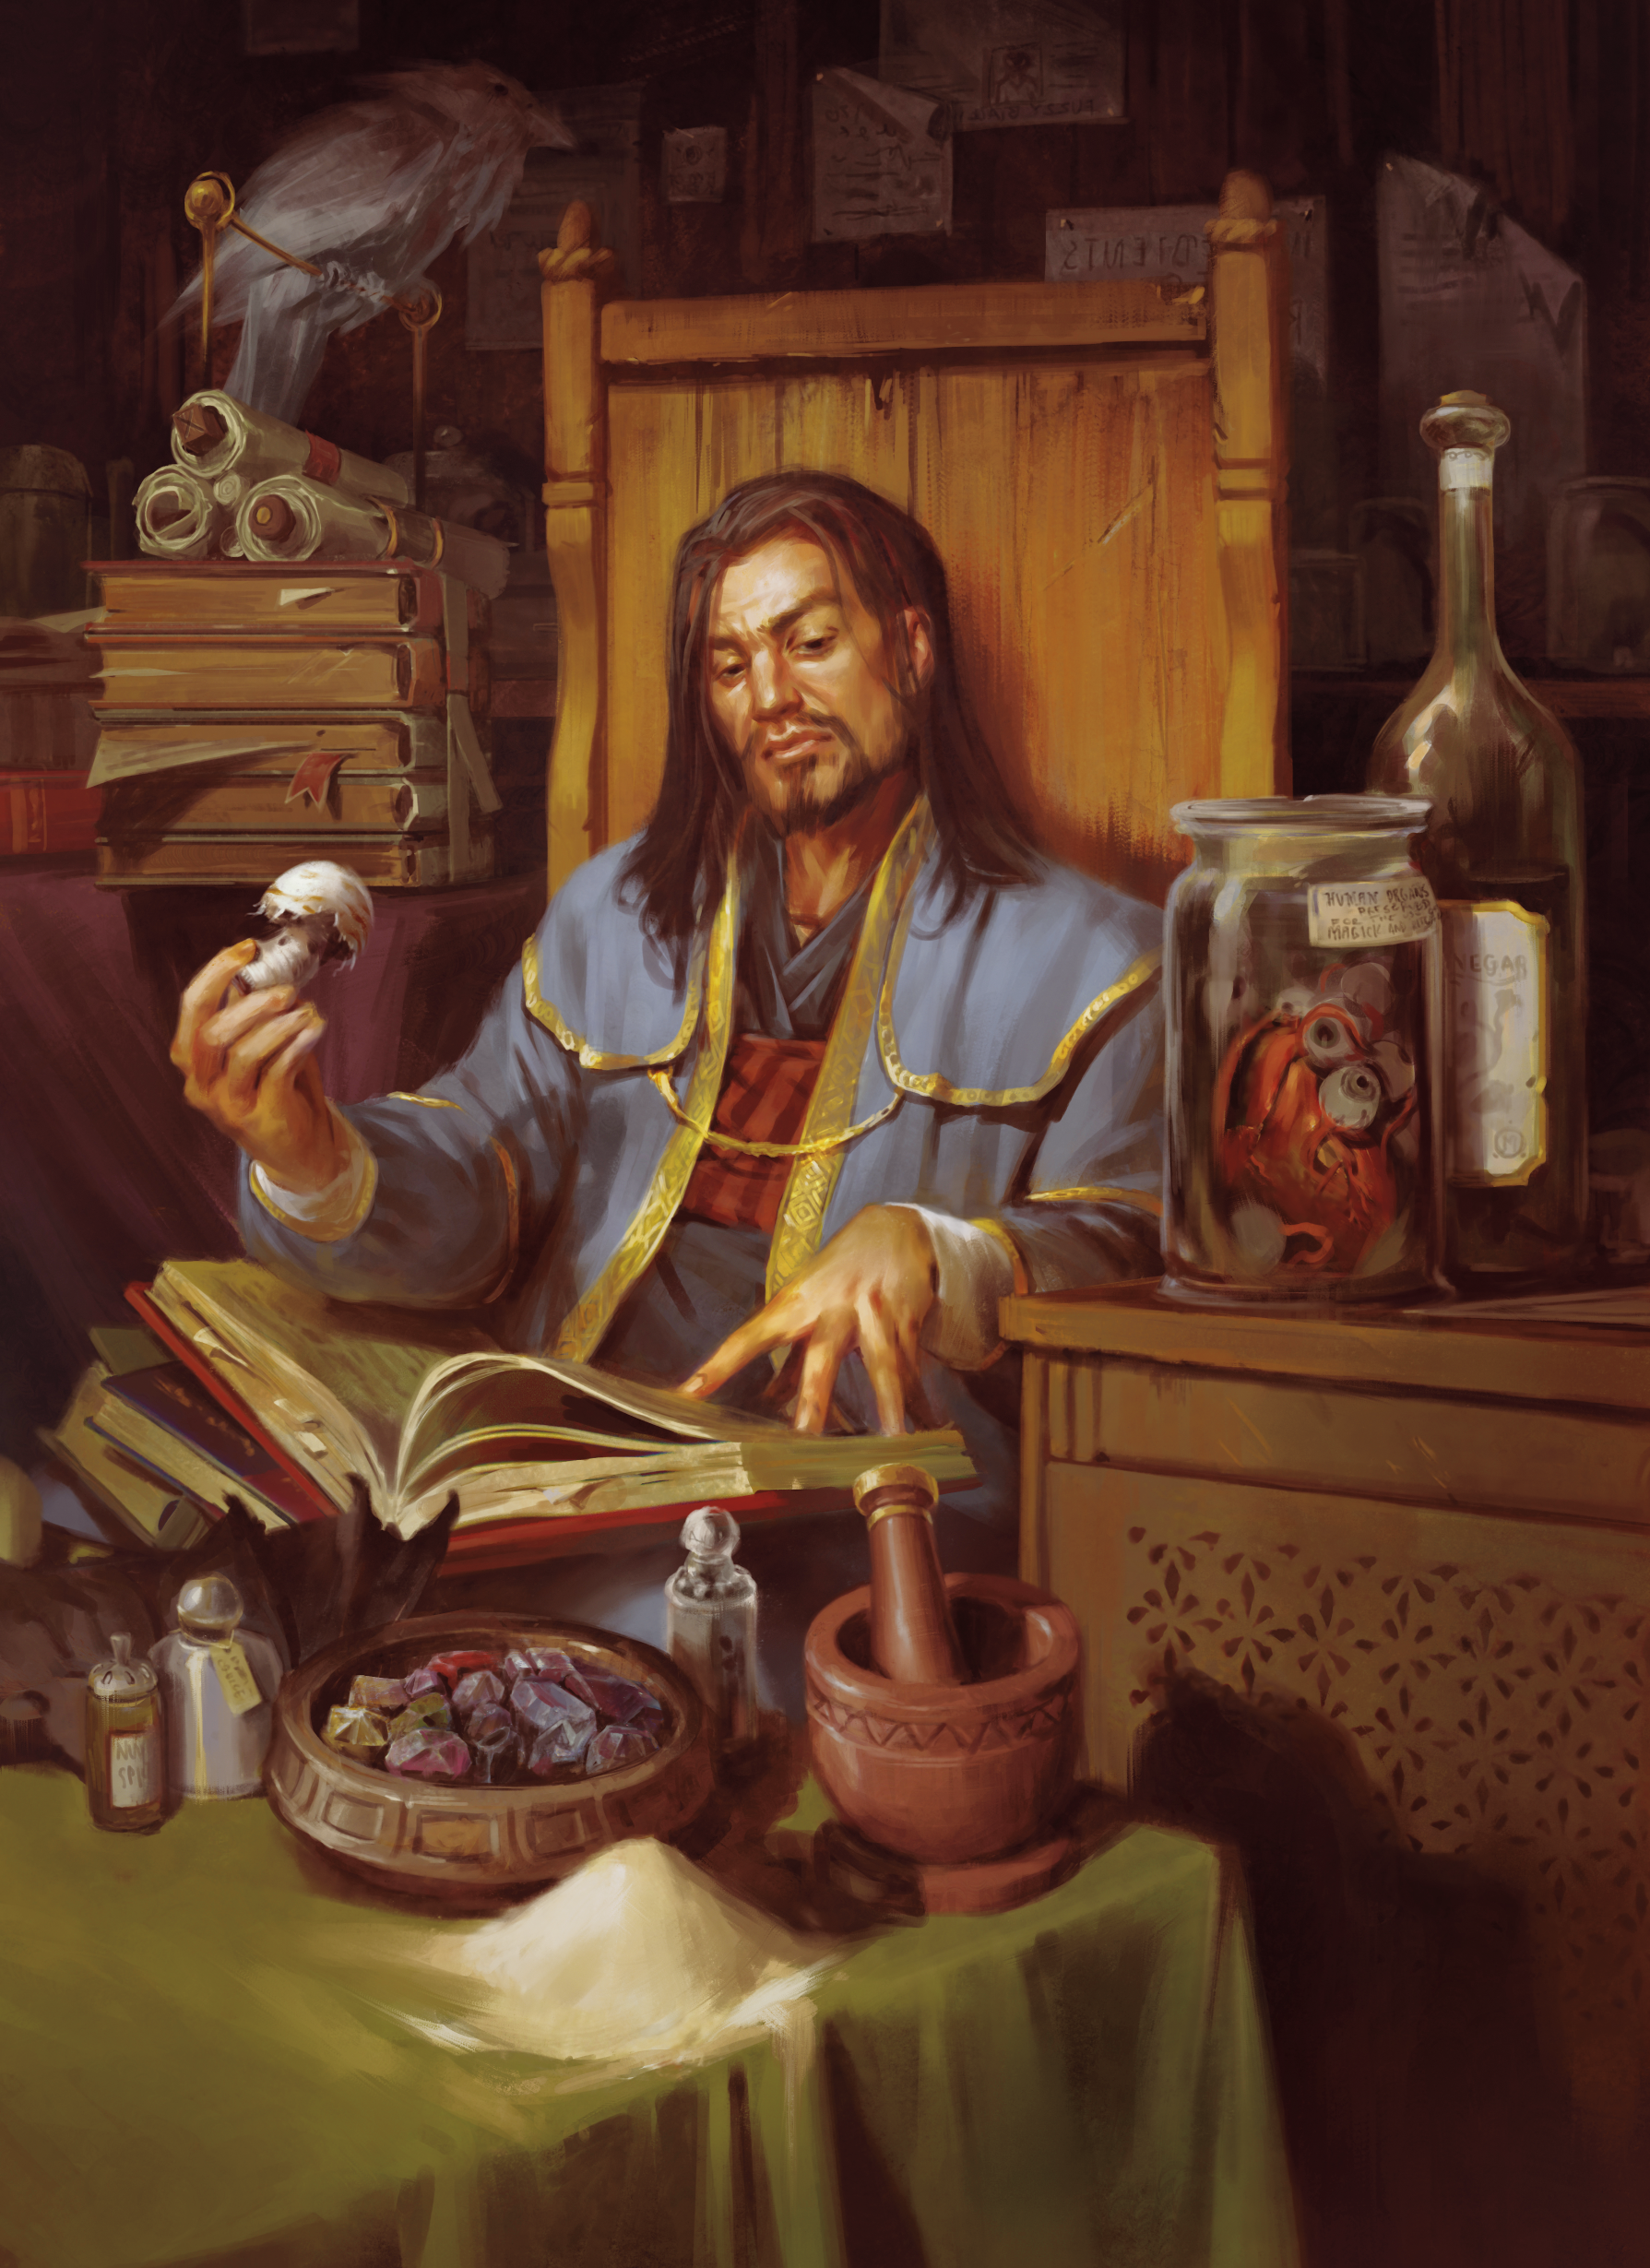 A Dungeons and Dragons character holding a large mushroom and reading a book